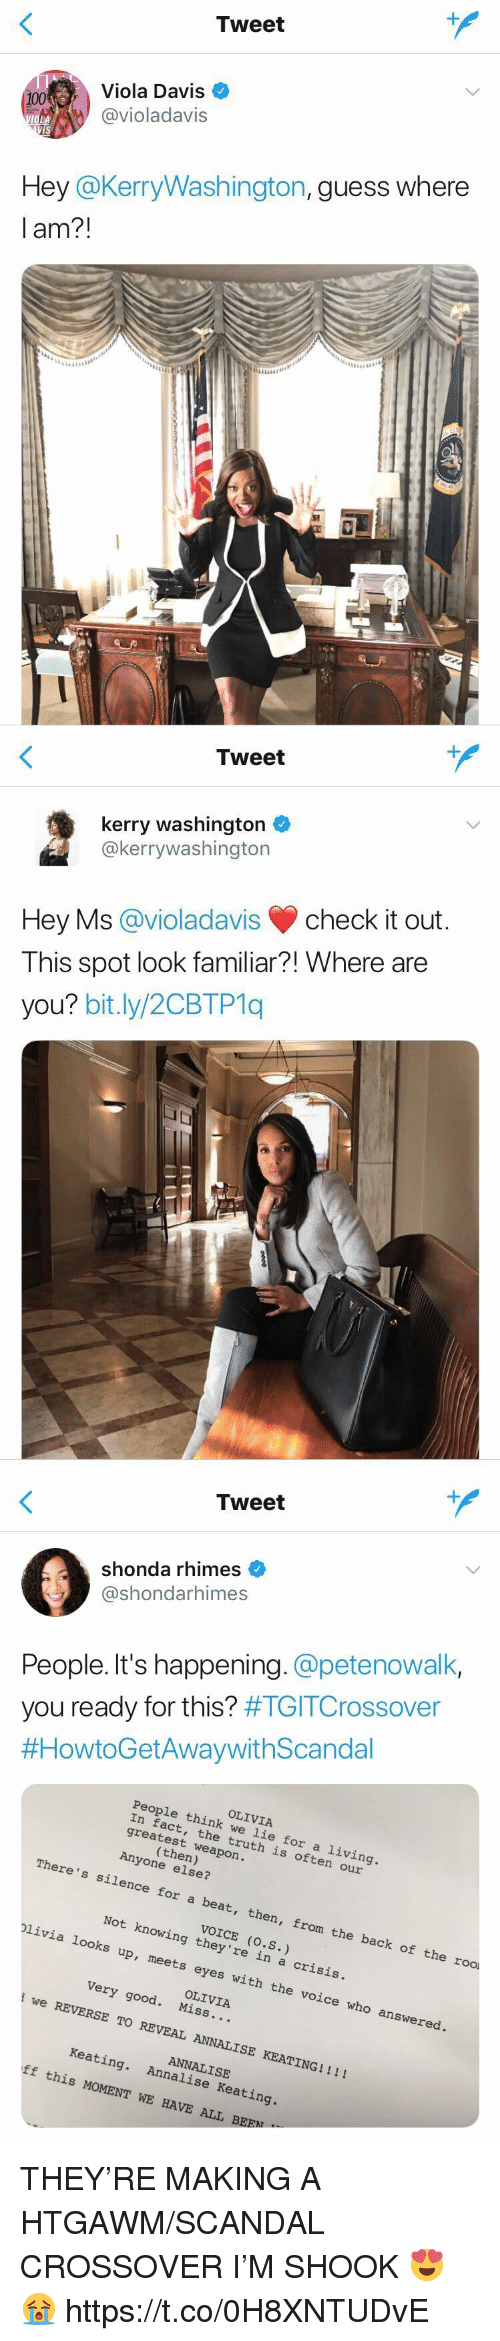 viola: Tweet  Viola Davis  @violadavis  VIS  Hey @KerryWashington,guess where  am?!   Tweet  kerry washington  @kerrywashington  Hey Ms@violadavischeck it out.  This spot look familiar?! Where are  you? bit.ly/2CBTP1q   1  Tweet  shonda rhimes  shondarhimes  People. It's happening. petenowalk,  you ready for this? #TGITCrossover  #HowtoGetAWaywithScandal  OLIVIA  People think we lie for a living  In fact, the truth is  greatest weapon  often our  Anyone else?  There's silence  for a beat, then, from the back of  the rool  VOICE (o.S.)  Not knowing they're in a crisi  plivia looks up, me  ets eyes with the voice who answered  OLIVIA  very good. Miss...  we REVERSE TO RE  VEAL ANNALISE KEATING!!!!  ANNALISE  Keating. Annalise Keating  ff this MOMENT WE HAVE ALL BEEN THEY'RE MAKING A HTGAWM/SCANDAL CROSSOVER I'M SHOOK 😍😭 https://t.co/0H8XNTUDvE